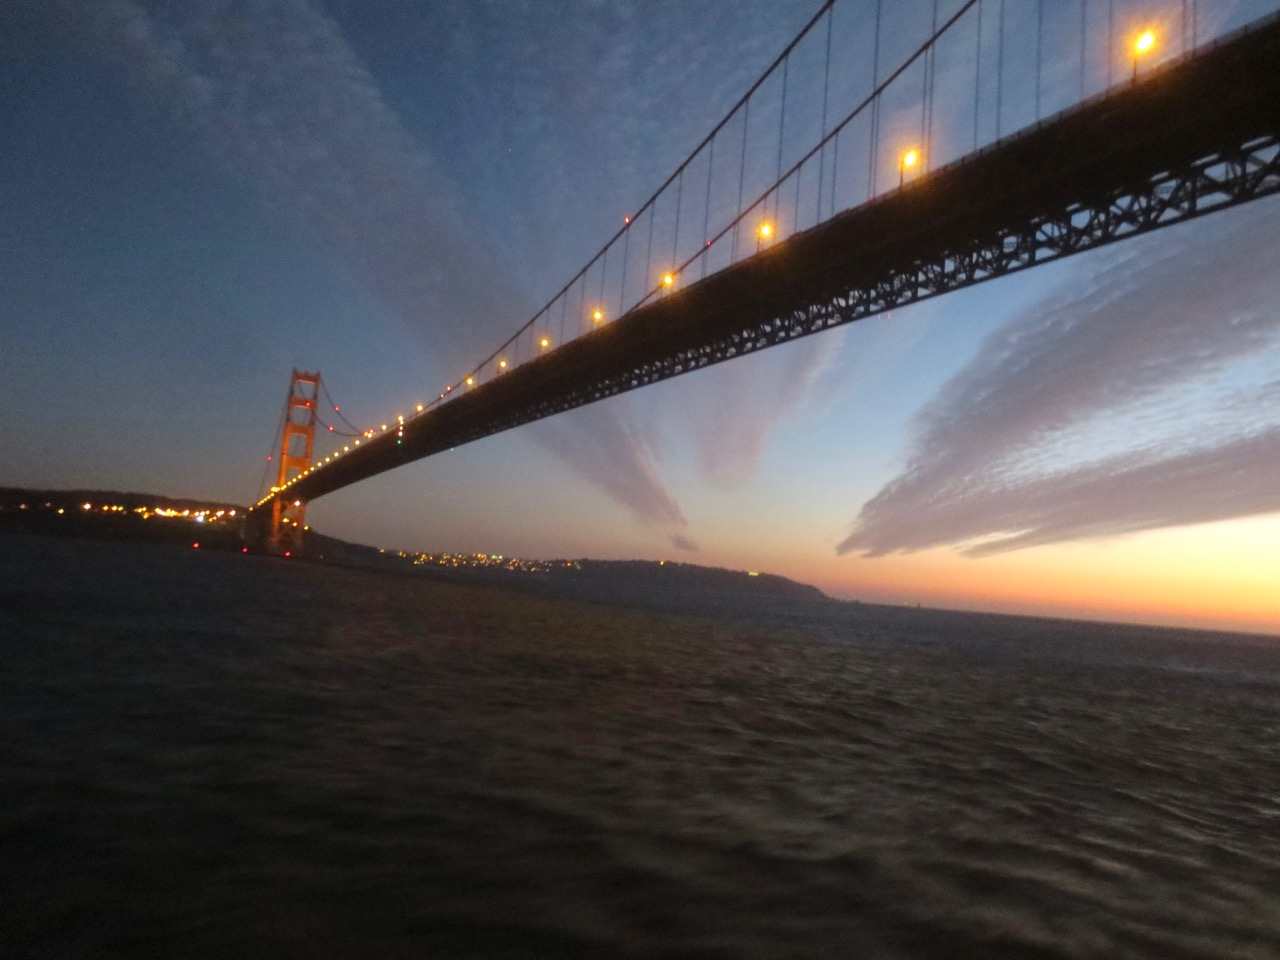 GG bridge at sunset